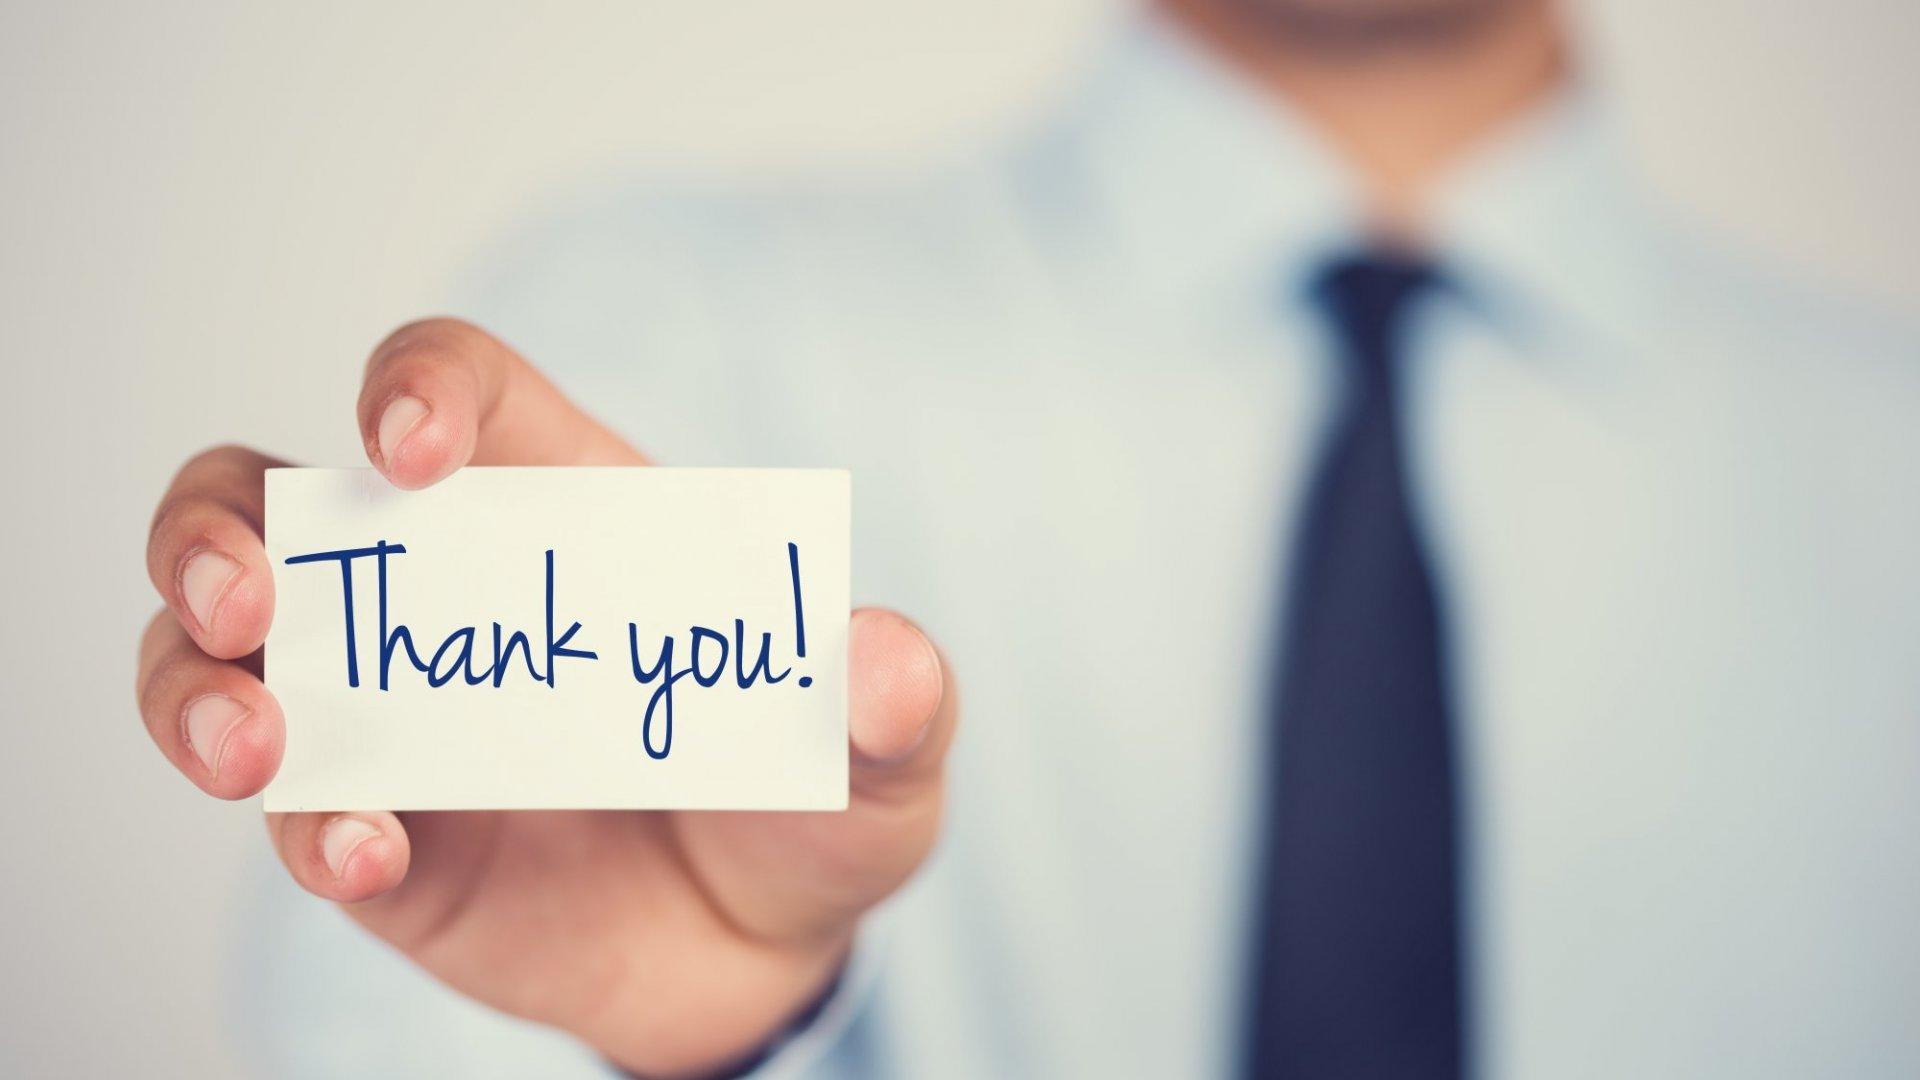 The Notion of Gratitude: A Small Change that has Big Impact